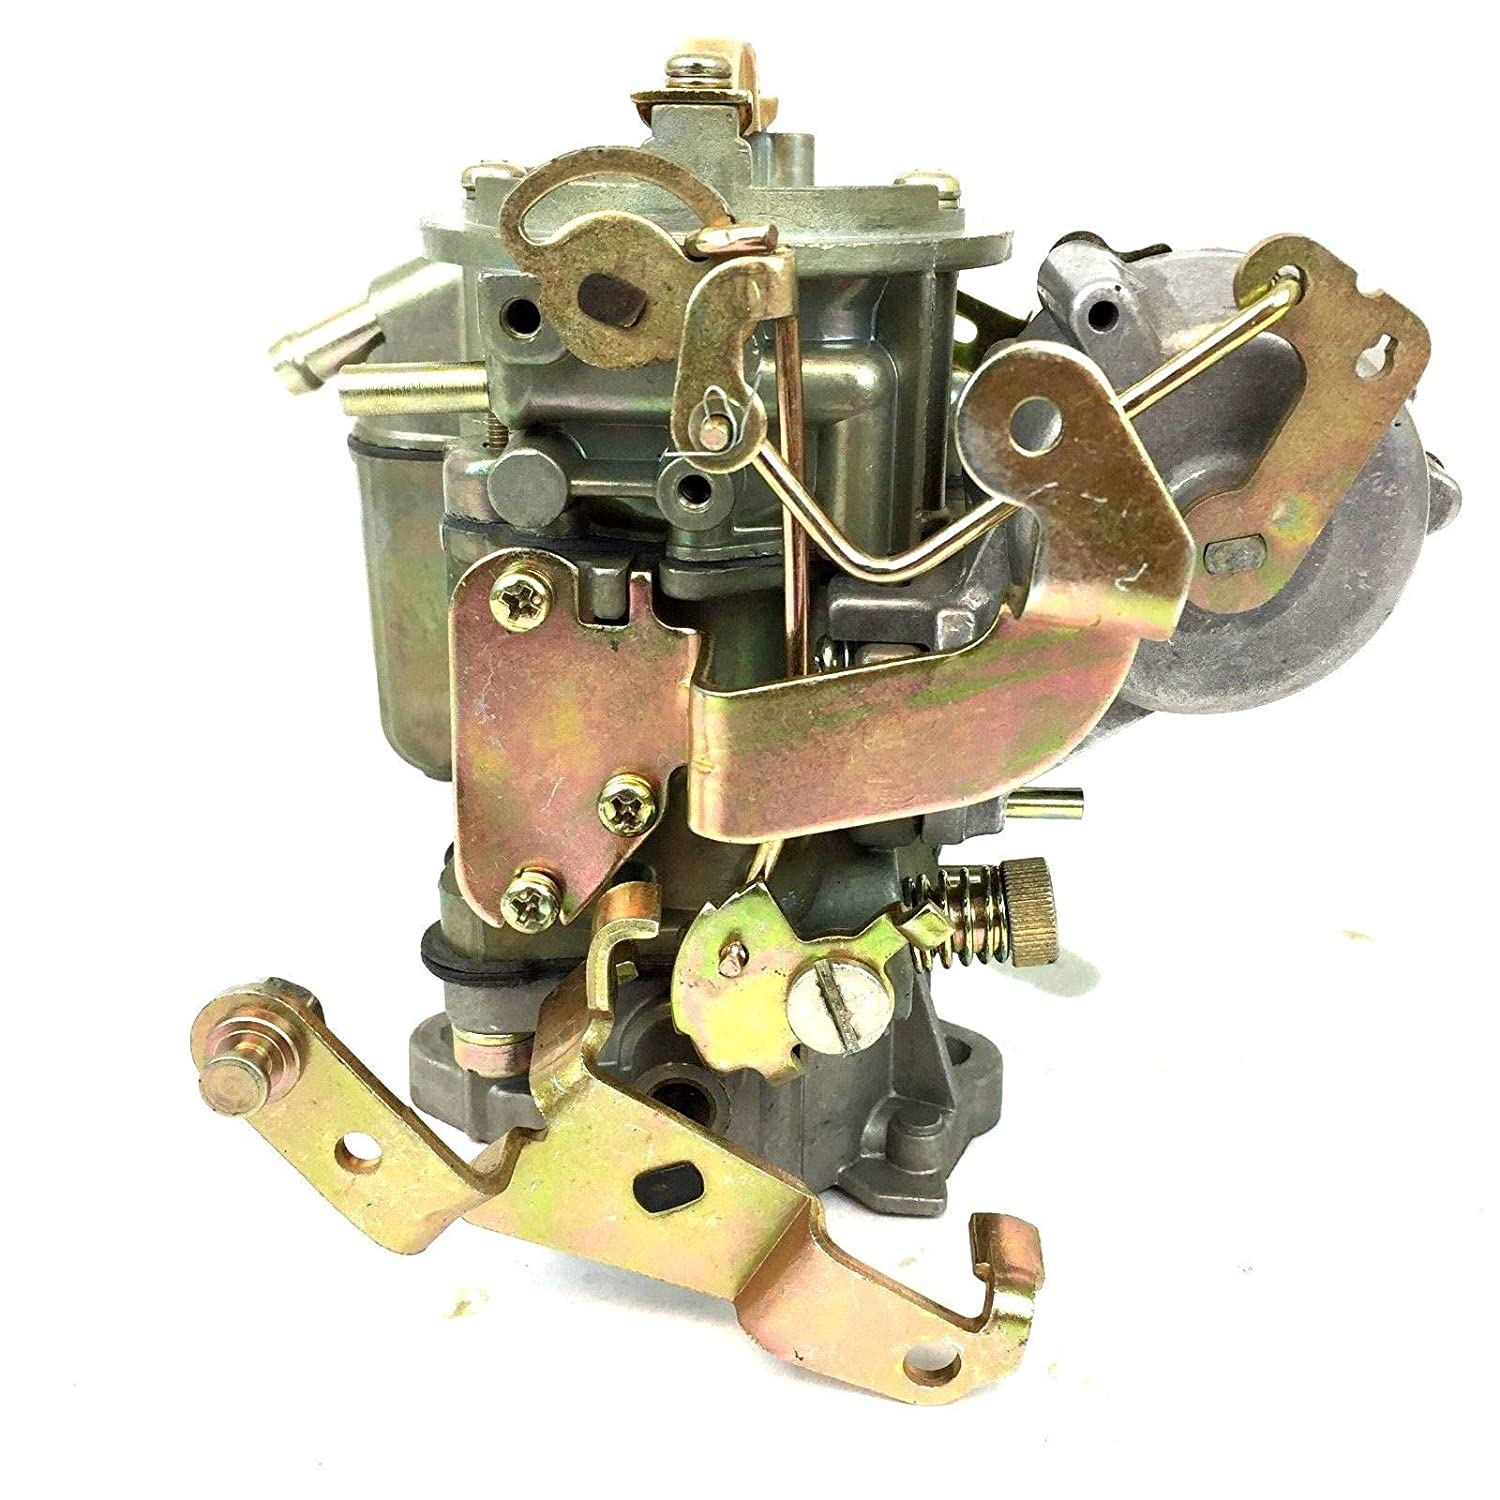 213 CARBURETOR GM ENGINES 250//292 6 CYL GM1 1 BARREL 1MV//1ME 3.8L 4.1L JM213